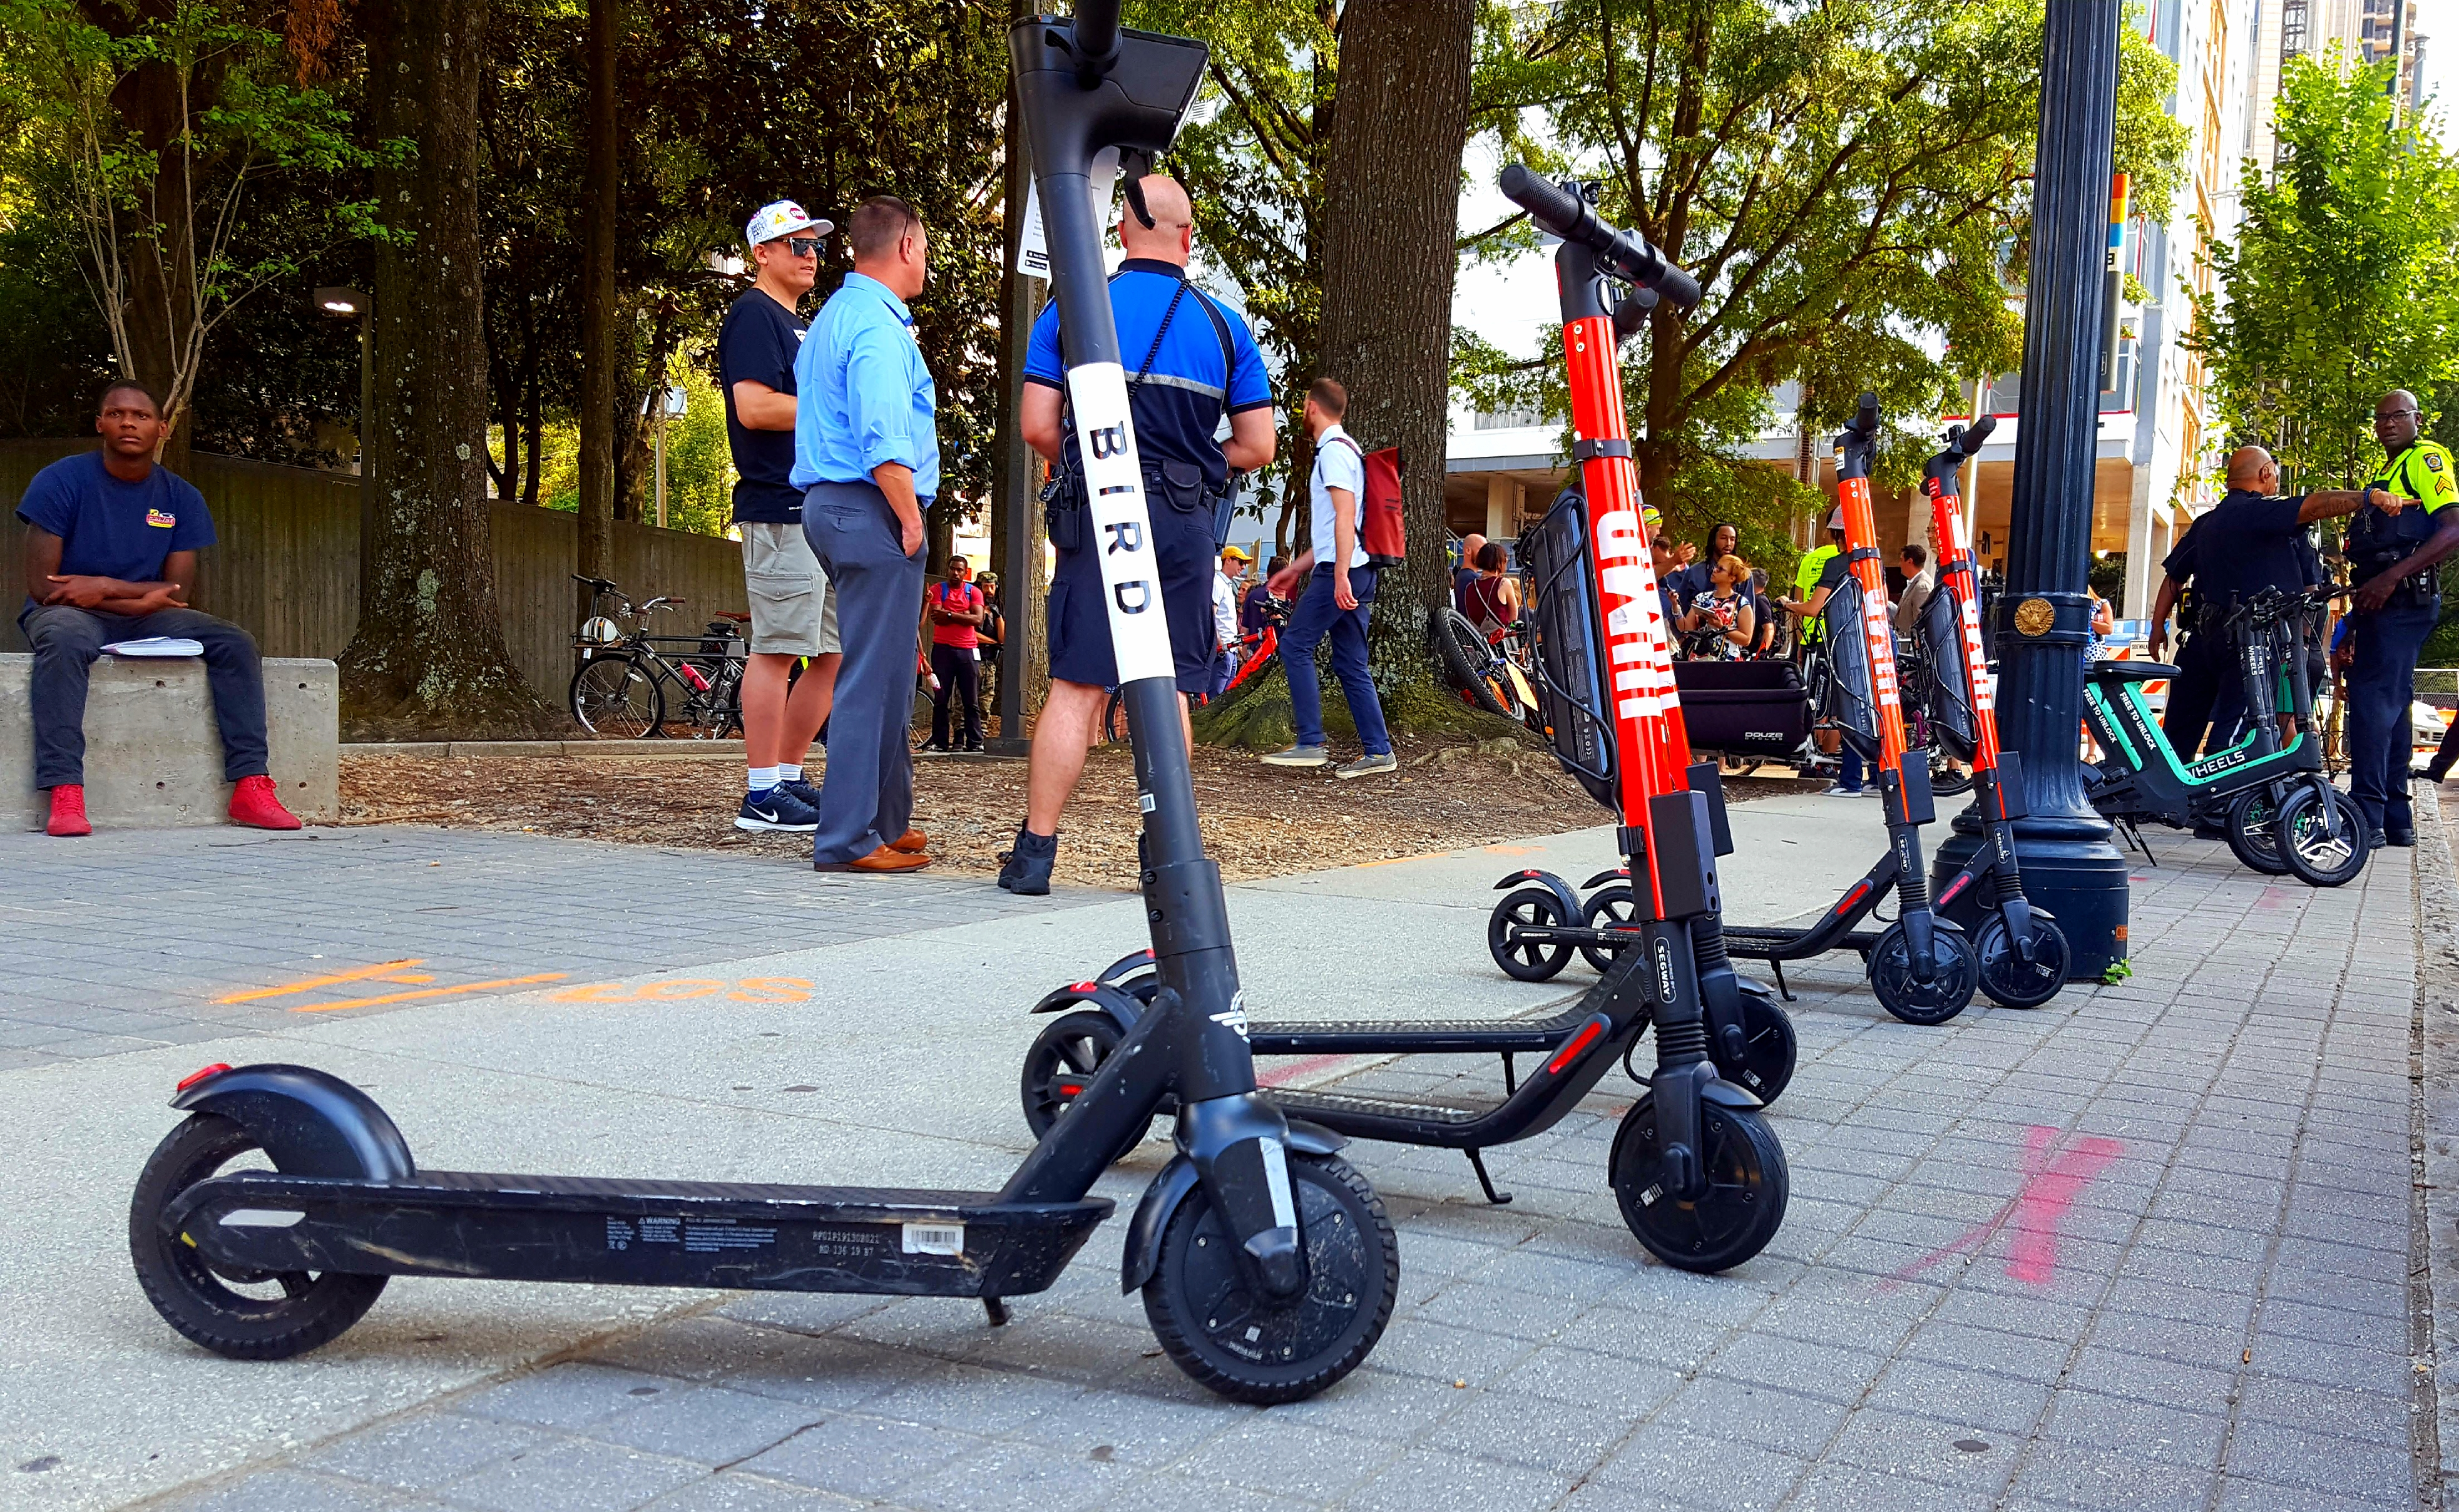 After fourth e-scooter death, Atlanta mayor imposes nighttime dockless vehicle ban